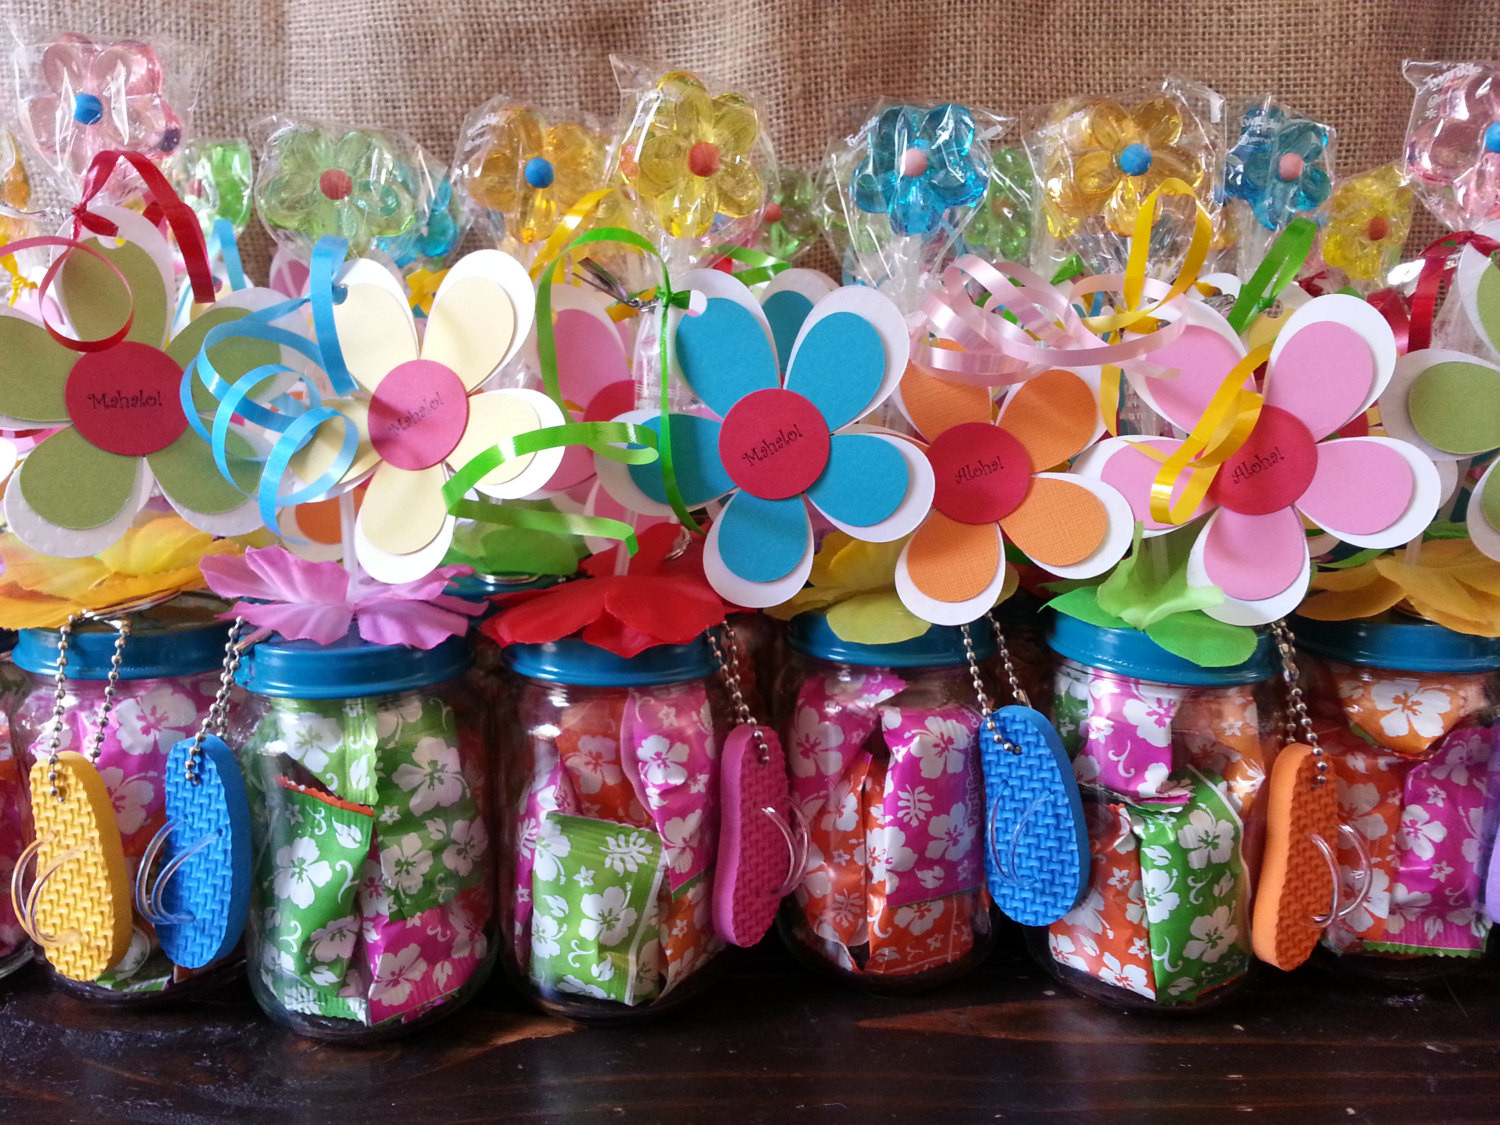 Child Birthday Party Supplies  Greatest Birthday Party Favors Kids Want Baby Couture India